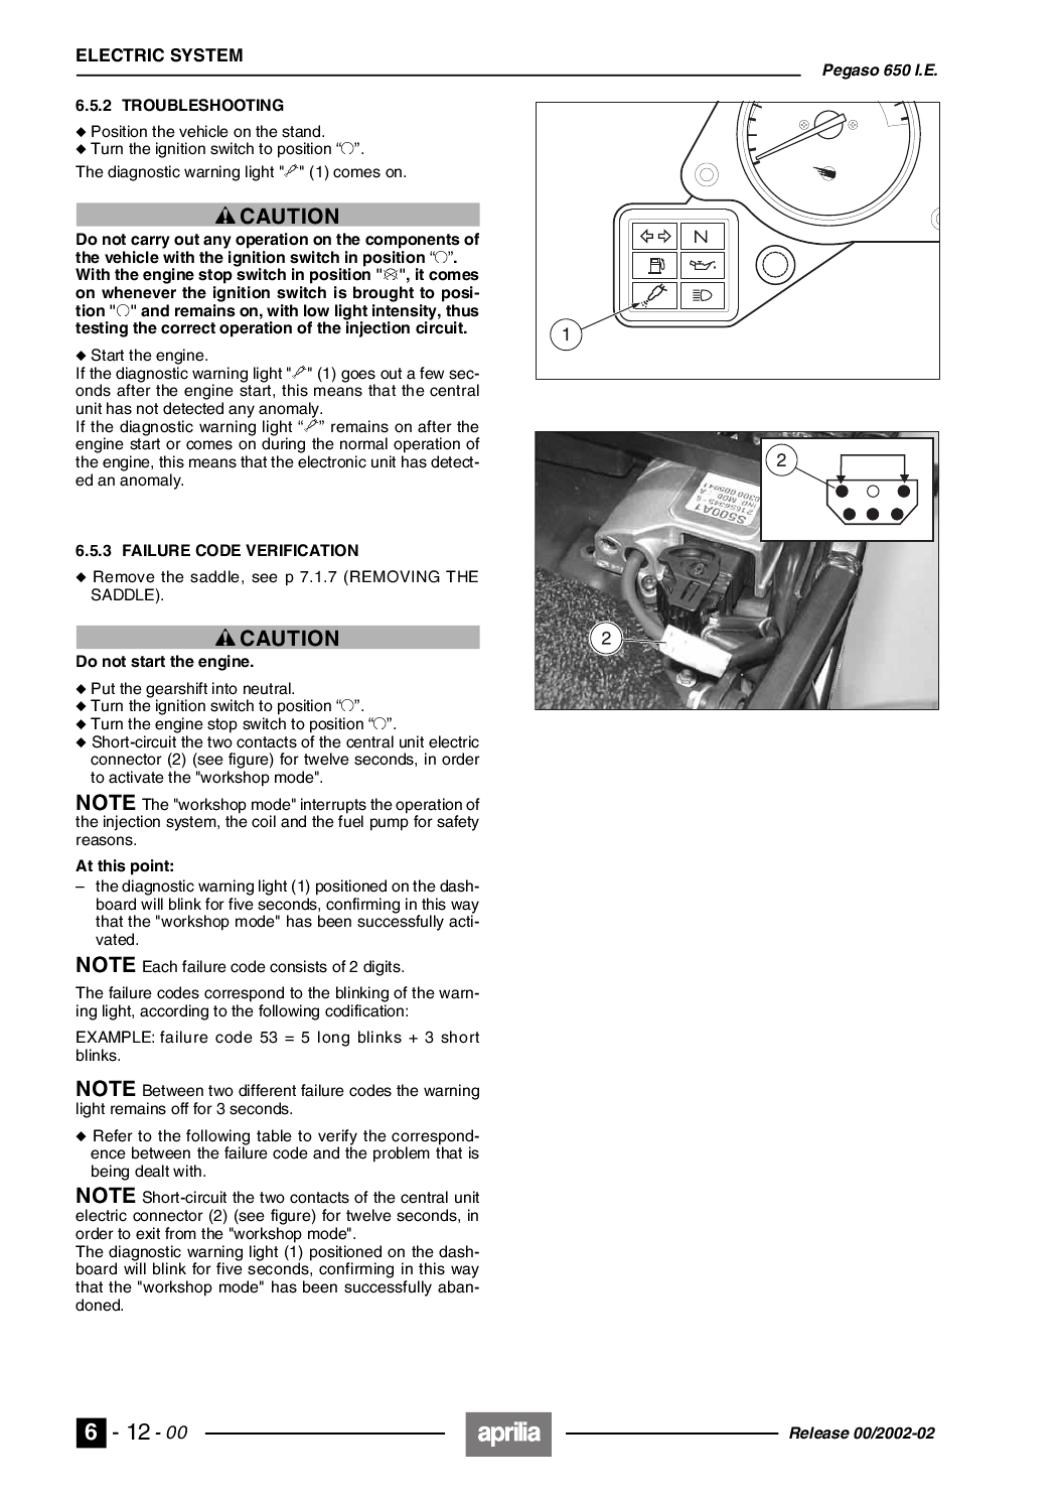 Aprilia Pegaso 650 ie Service Manual by Athanasios Vrakas